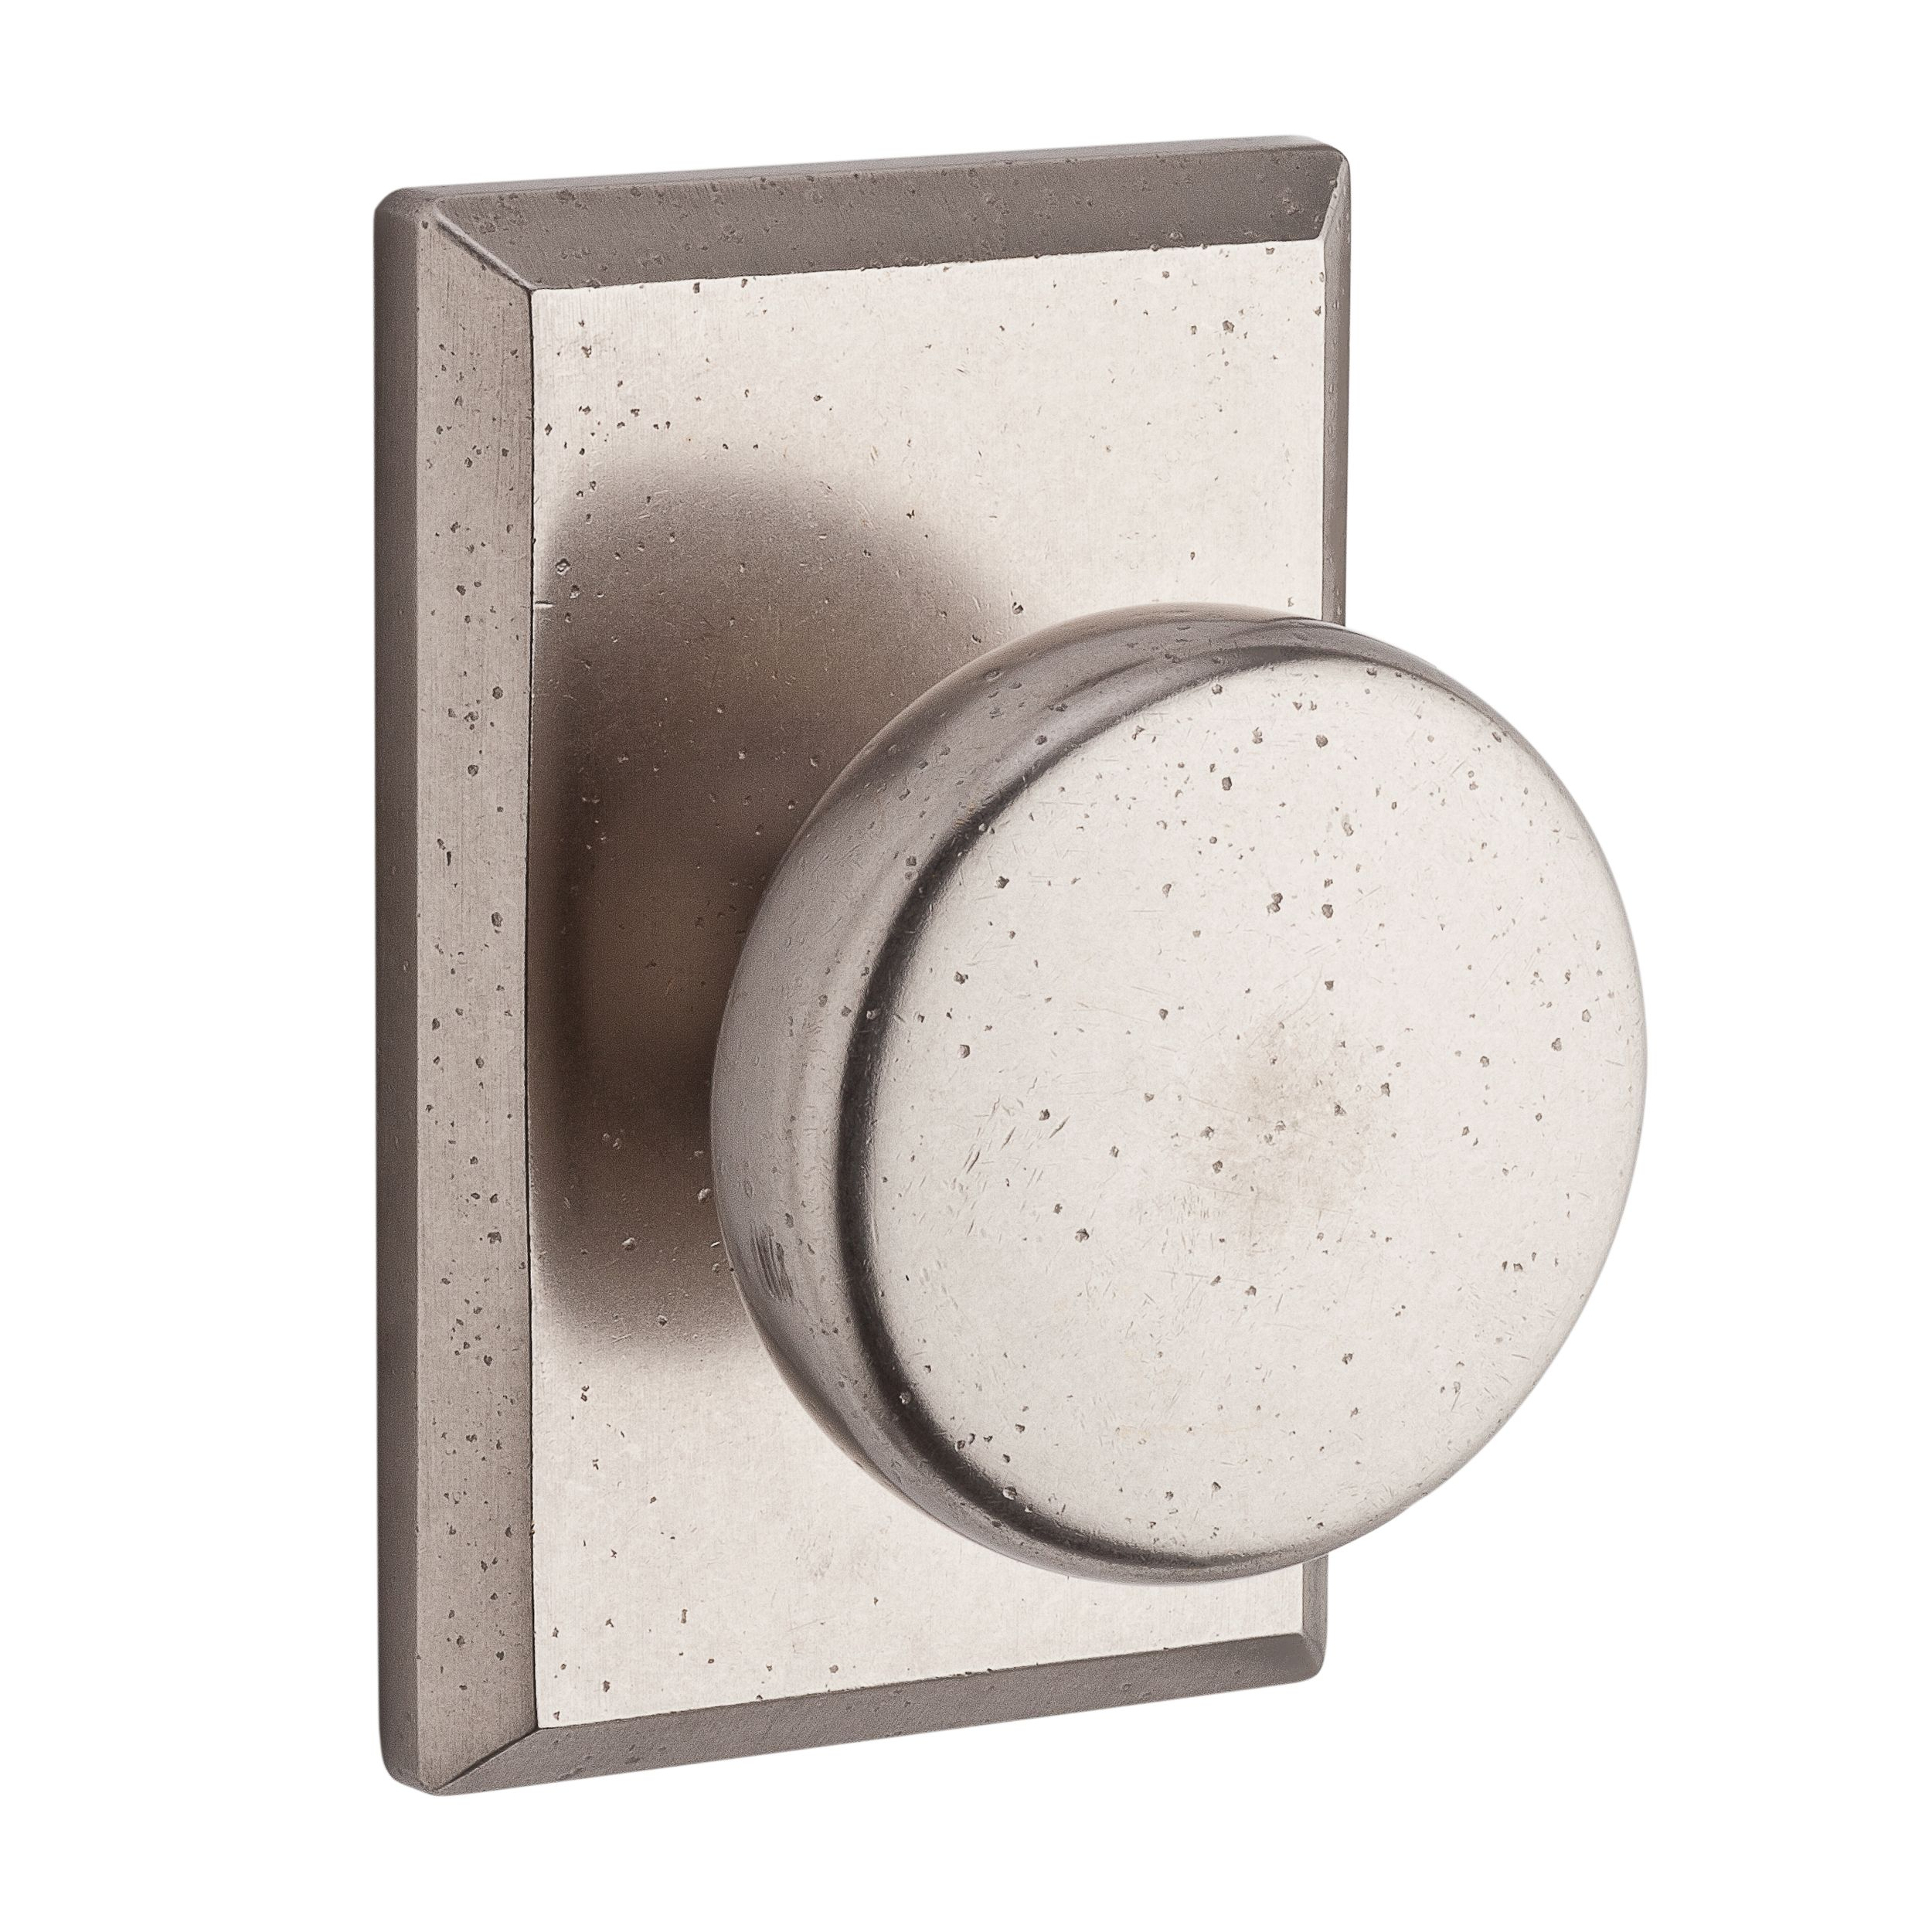 110RUSRSR492 Rustic round knob with rustic square rose shown in white bronze. Available in all functions, with other finish and rosette options.